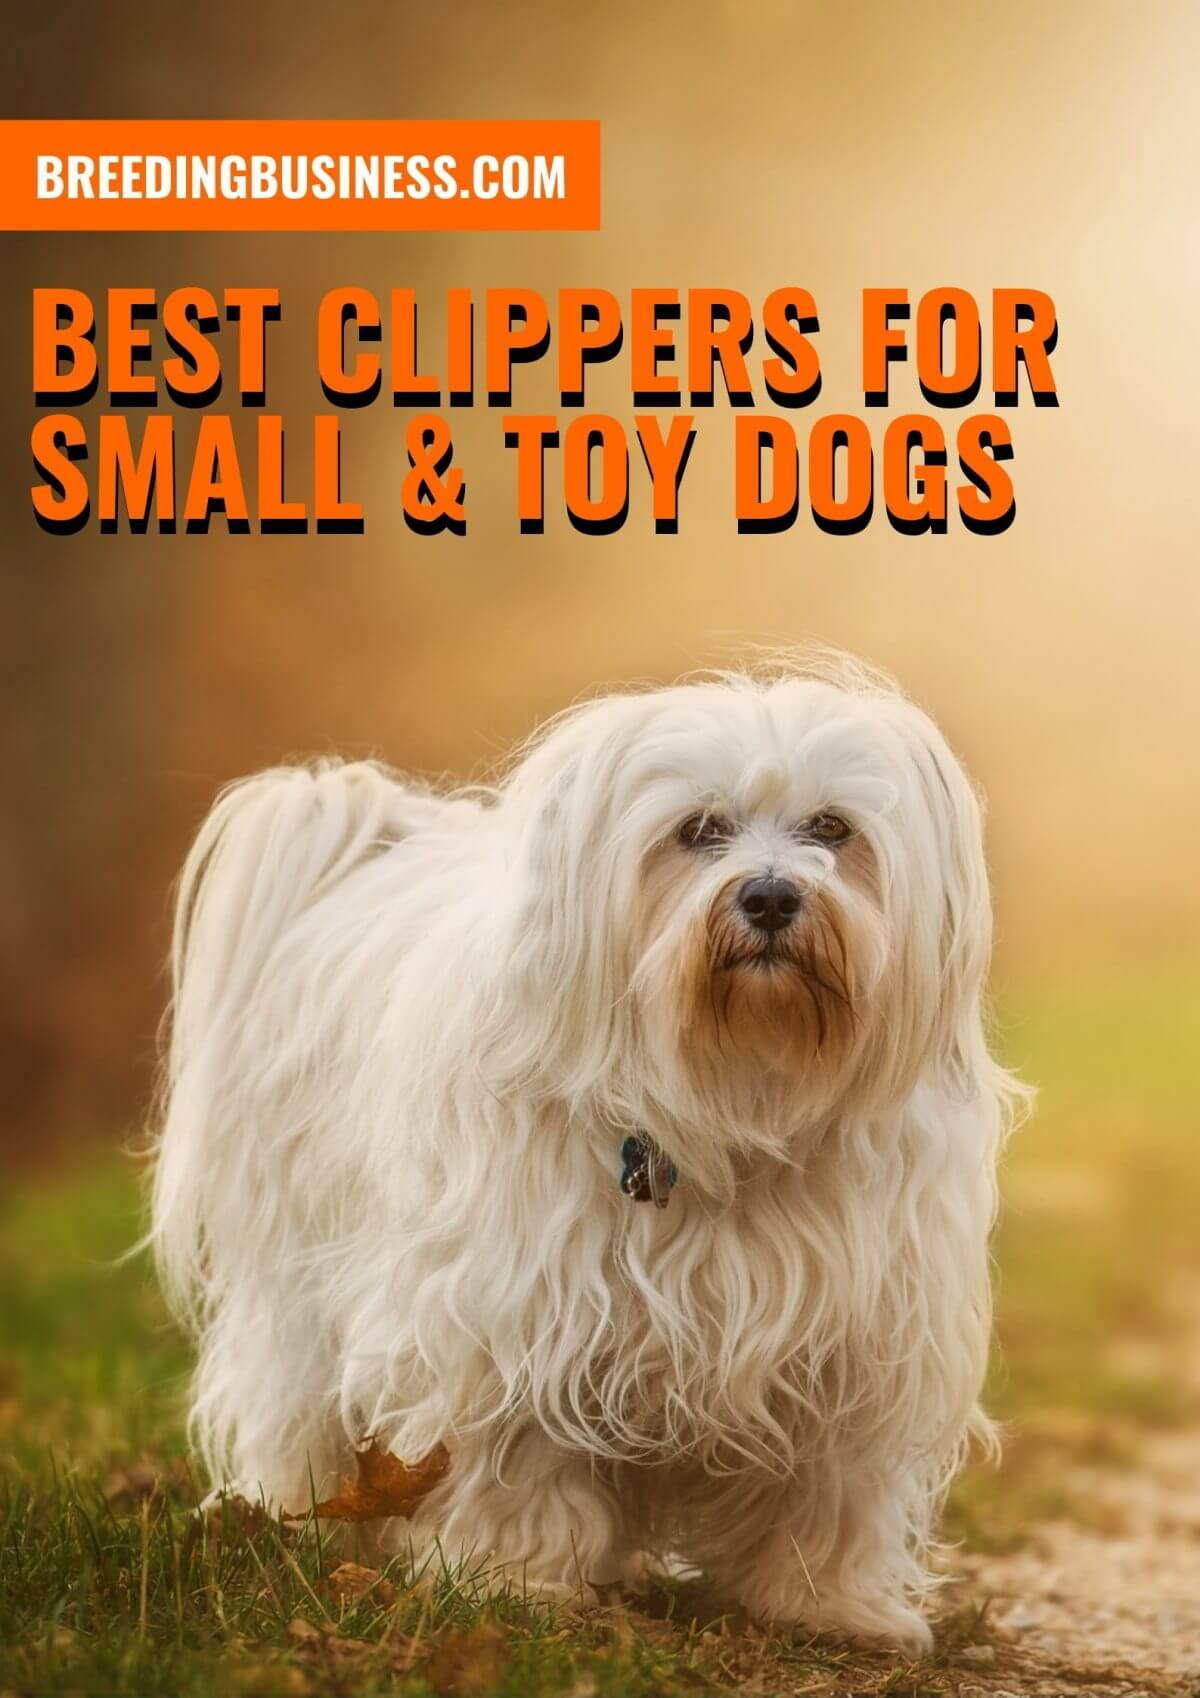 Best Clippers for Small & Toy Dogs – Buying Guide, Brands and Reviews